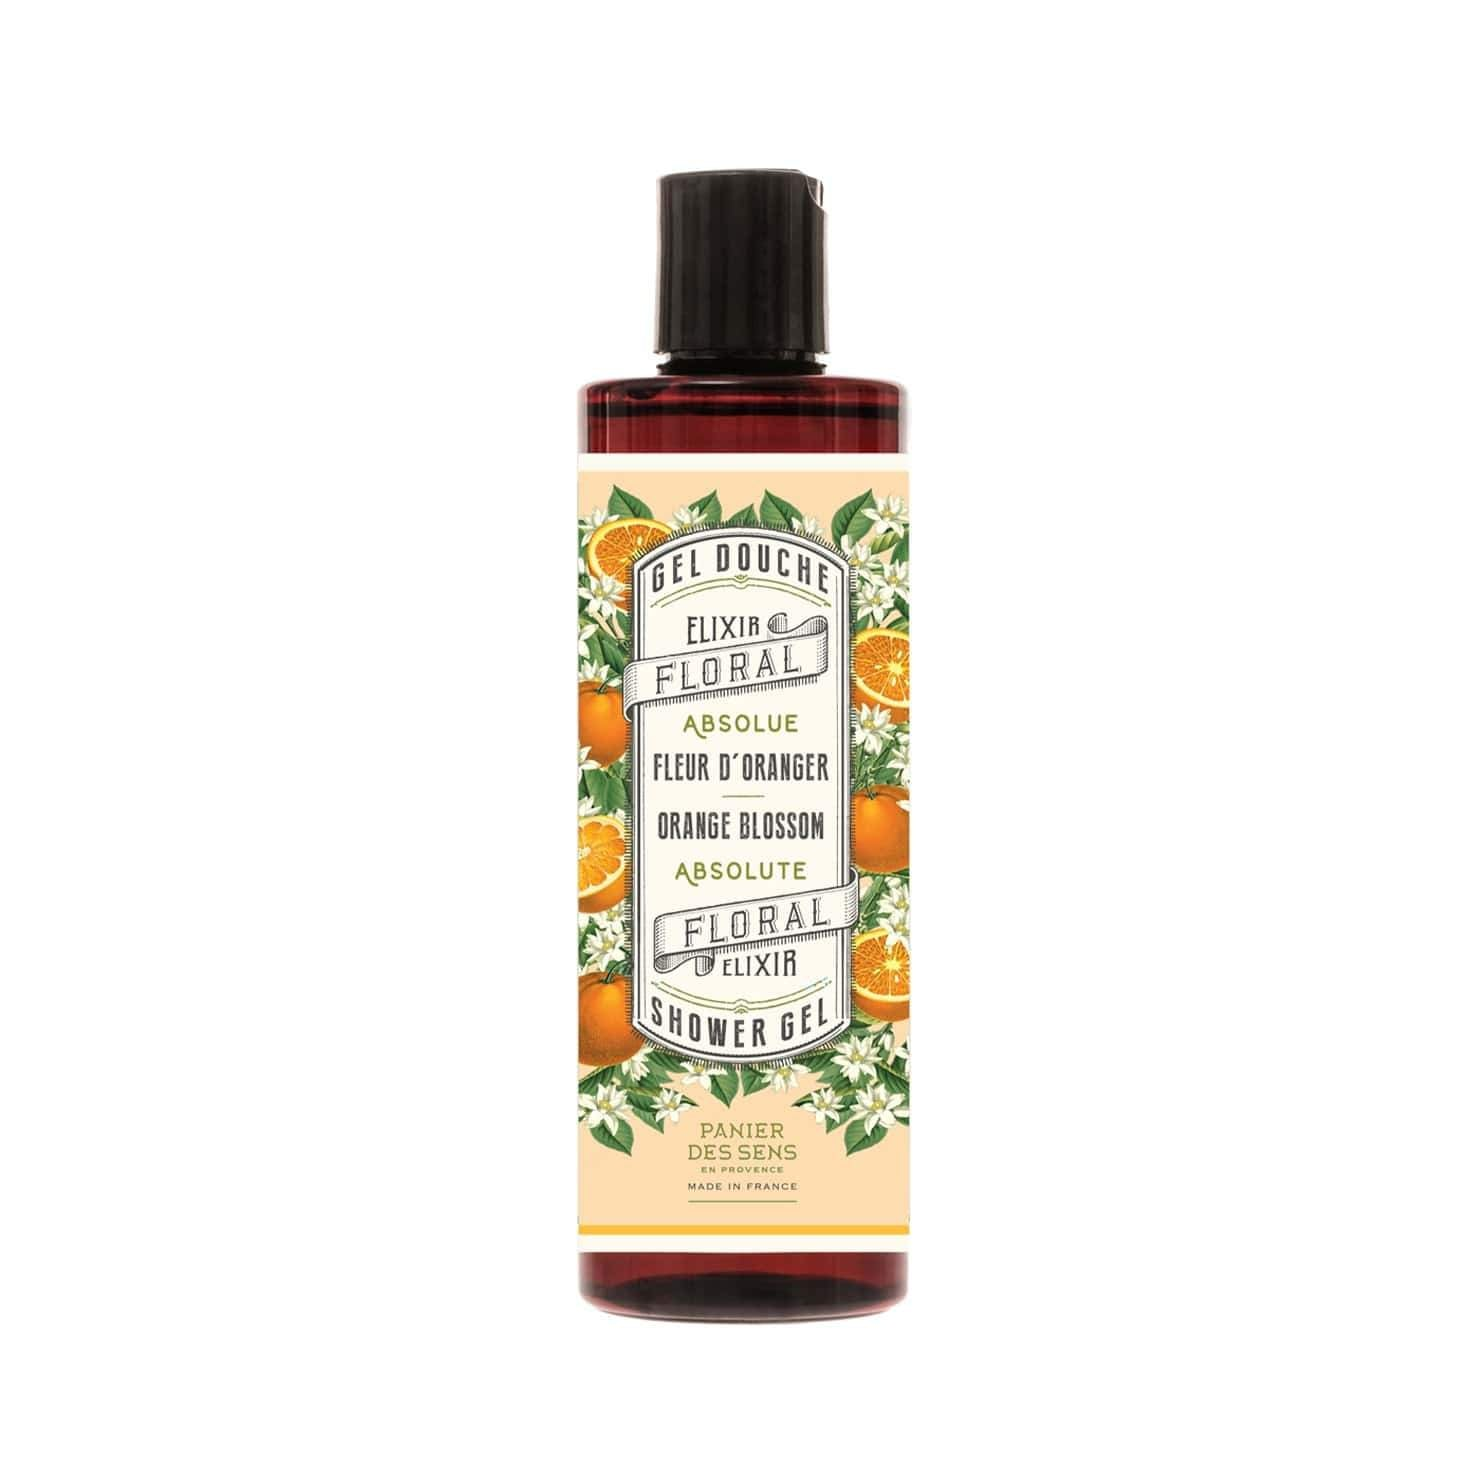 Panier des Sens Orange Blossom Shower Gel